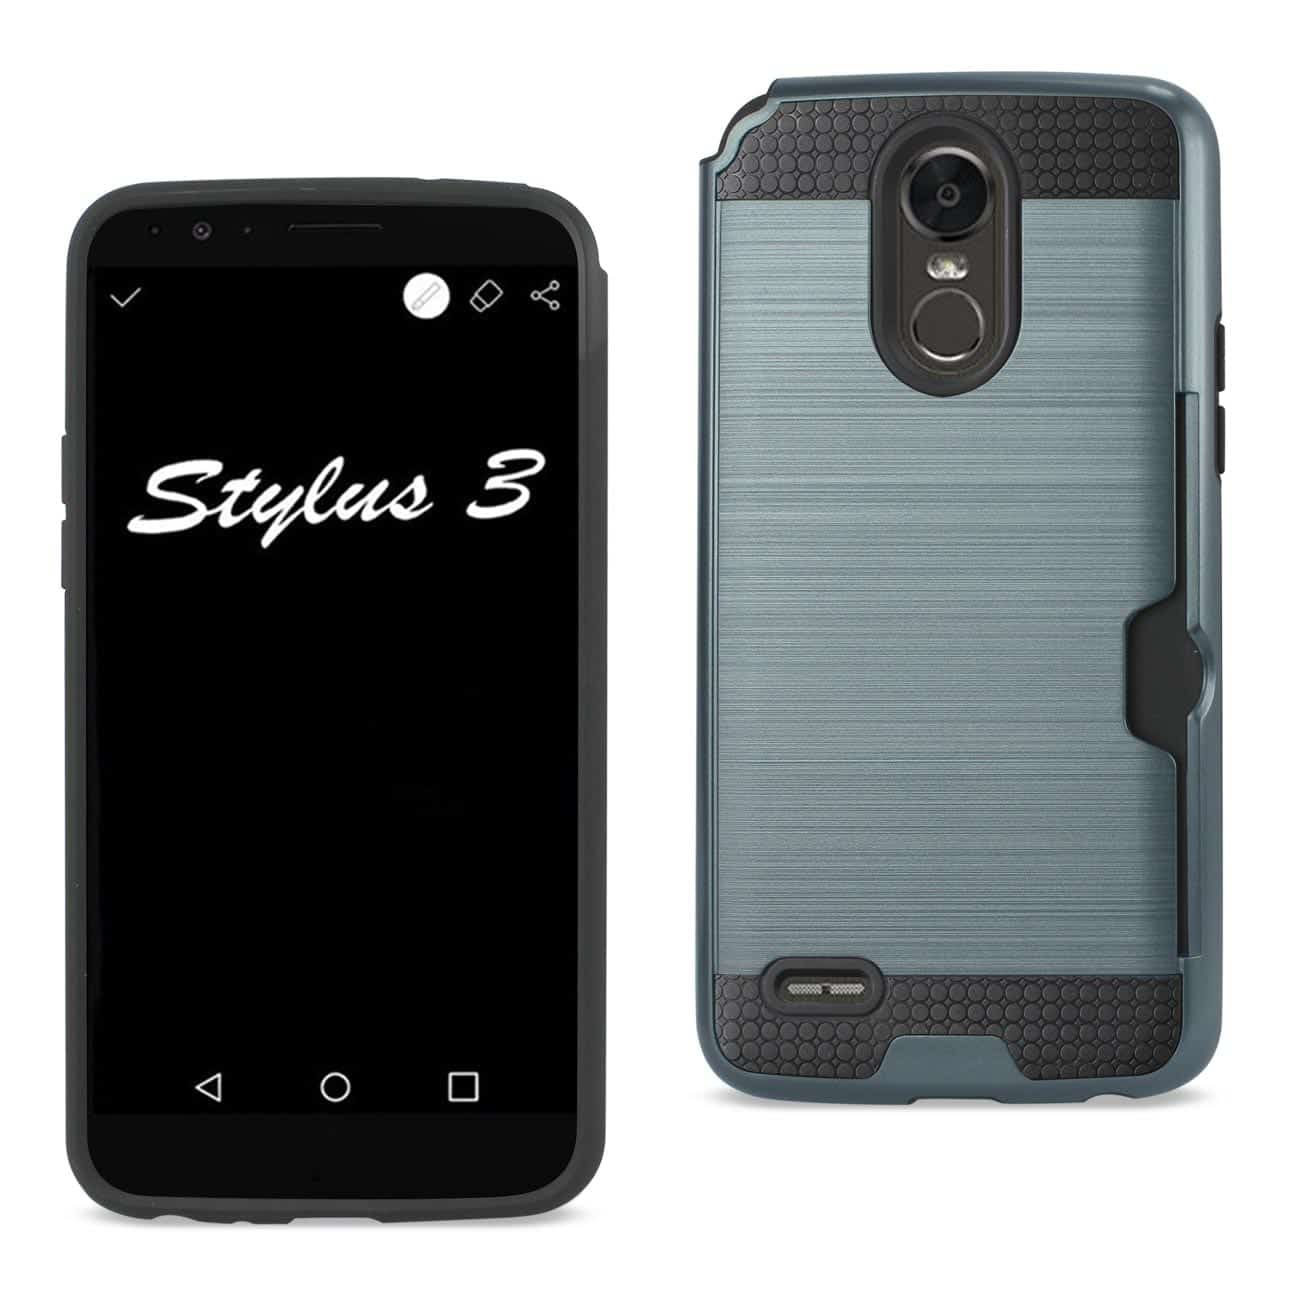 Lg Stylo 3/ Stylus 3 Slim Armor Hybrid Case With Card Holder In Navy